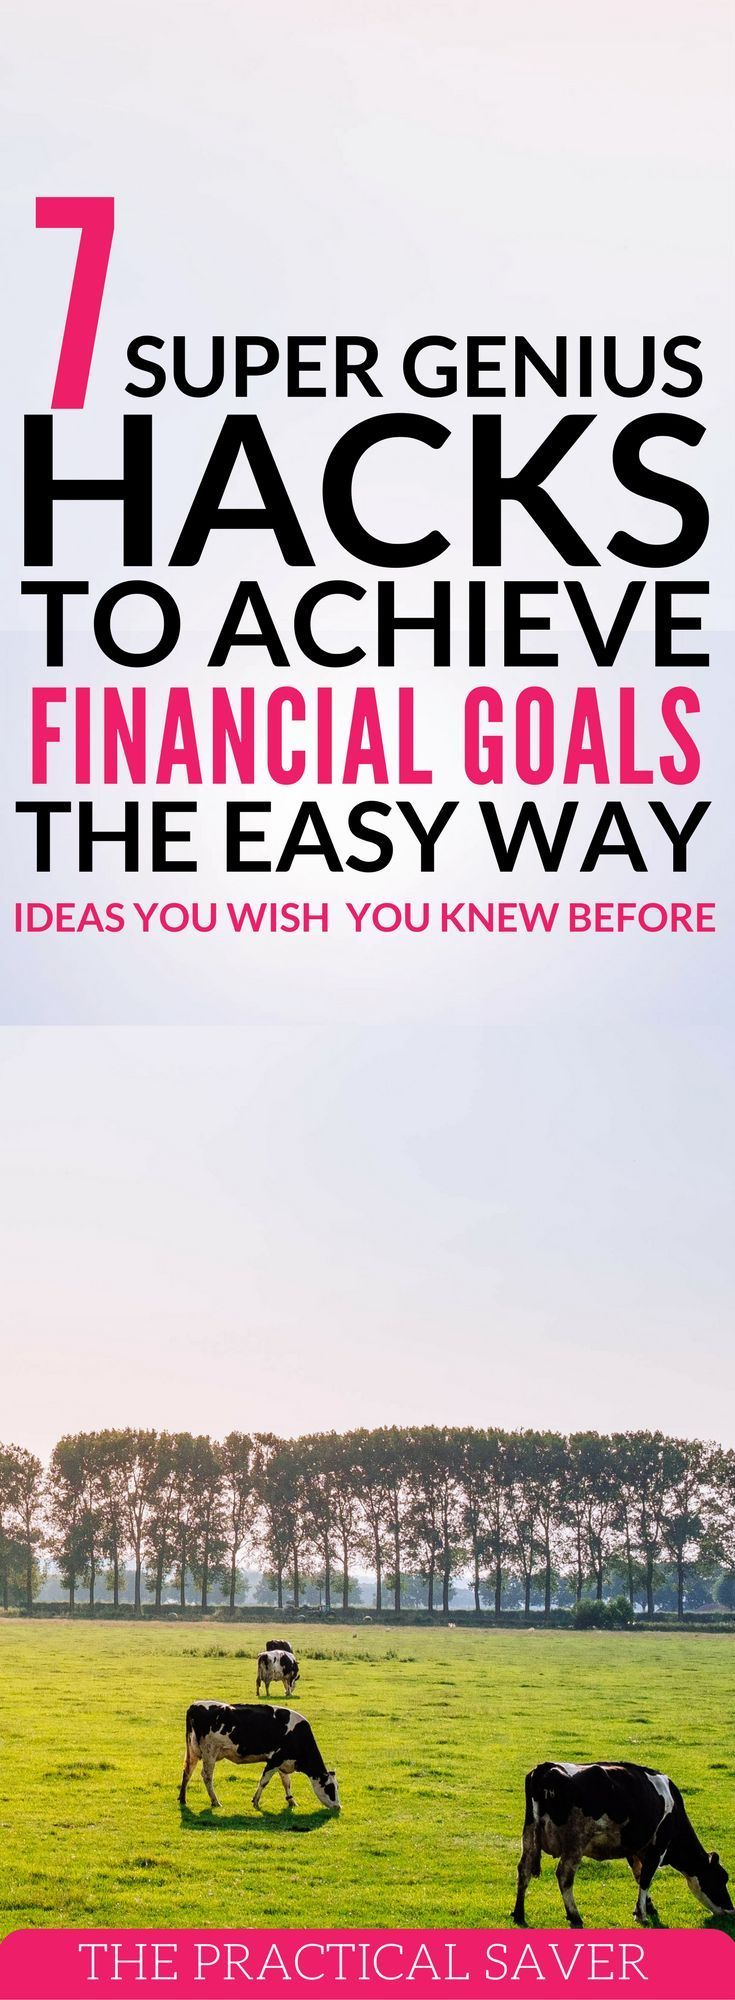 New year, new personal finance goals. Learn how to achieve your financial goals the easy way. From making money online to stock market investing, find out how you can make those happen. money hacks l personal finance tips l budgeting tips l financial freedom l save extra money. #money #hacks #finances #financial freedom